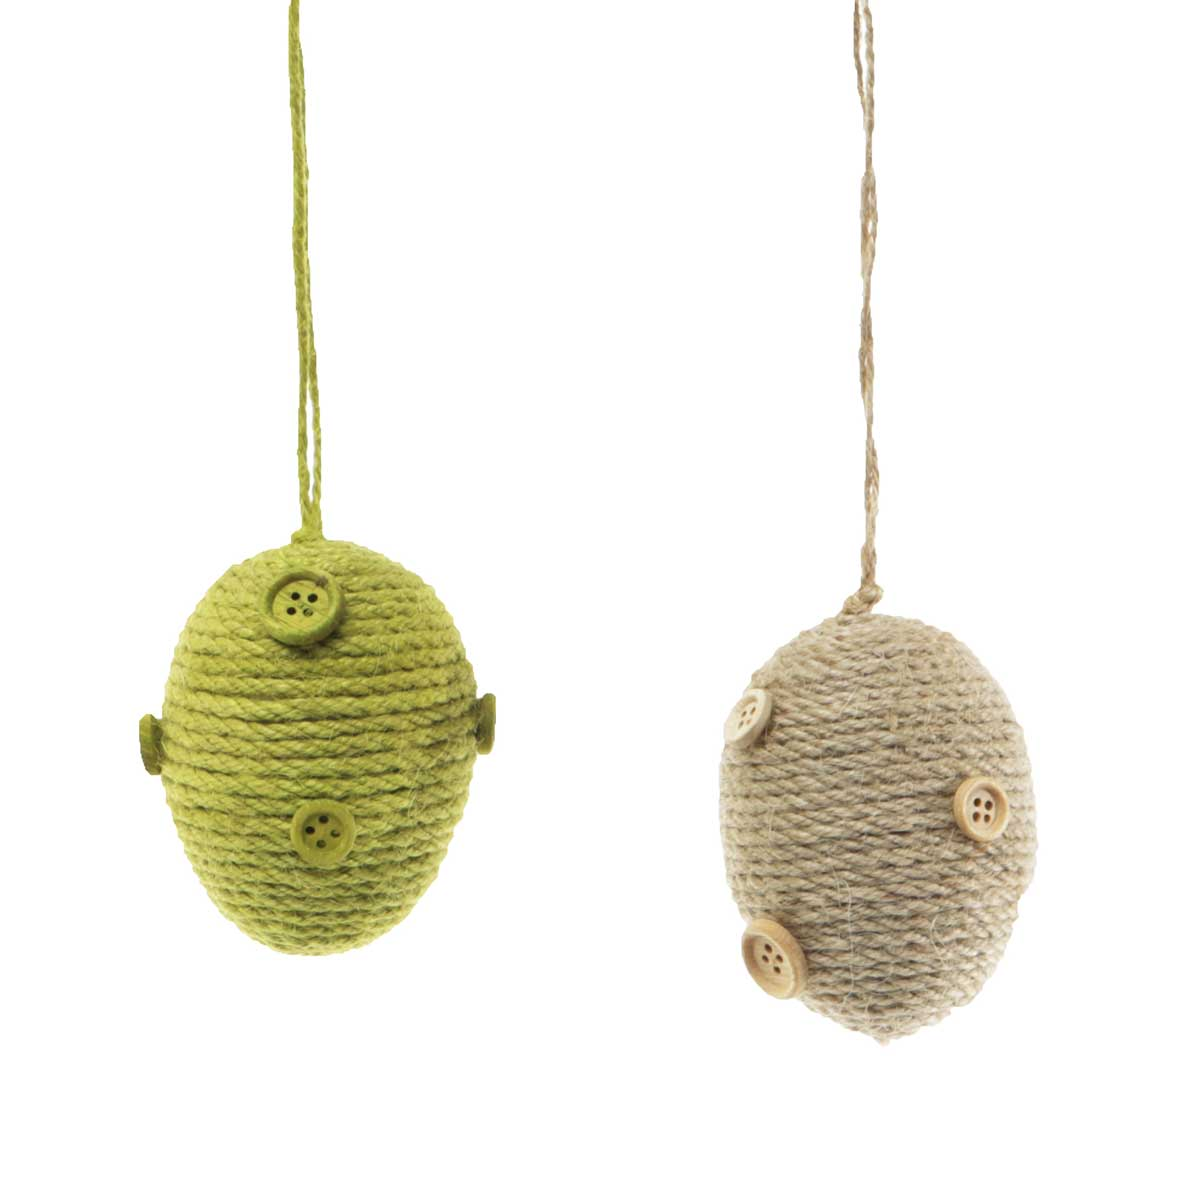 "M8613 STRING EGG WITH BUTTONS 2 ASSORTED NATURAL/GREEN 3"" 70sp"